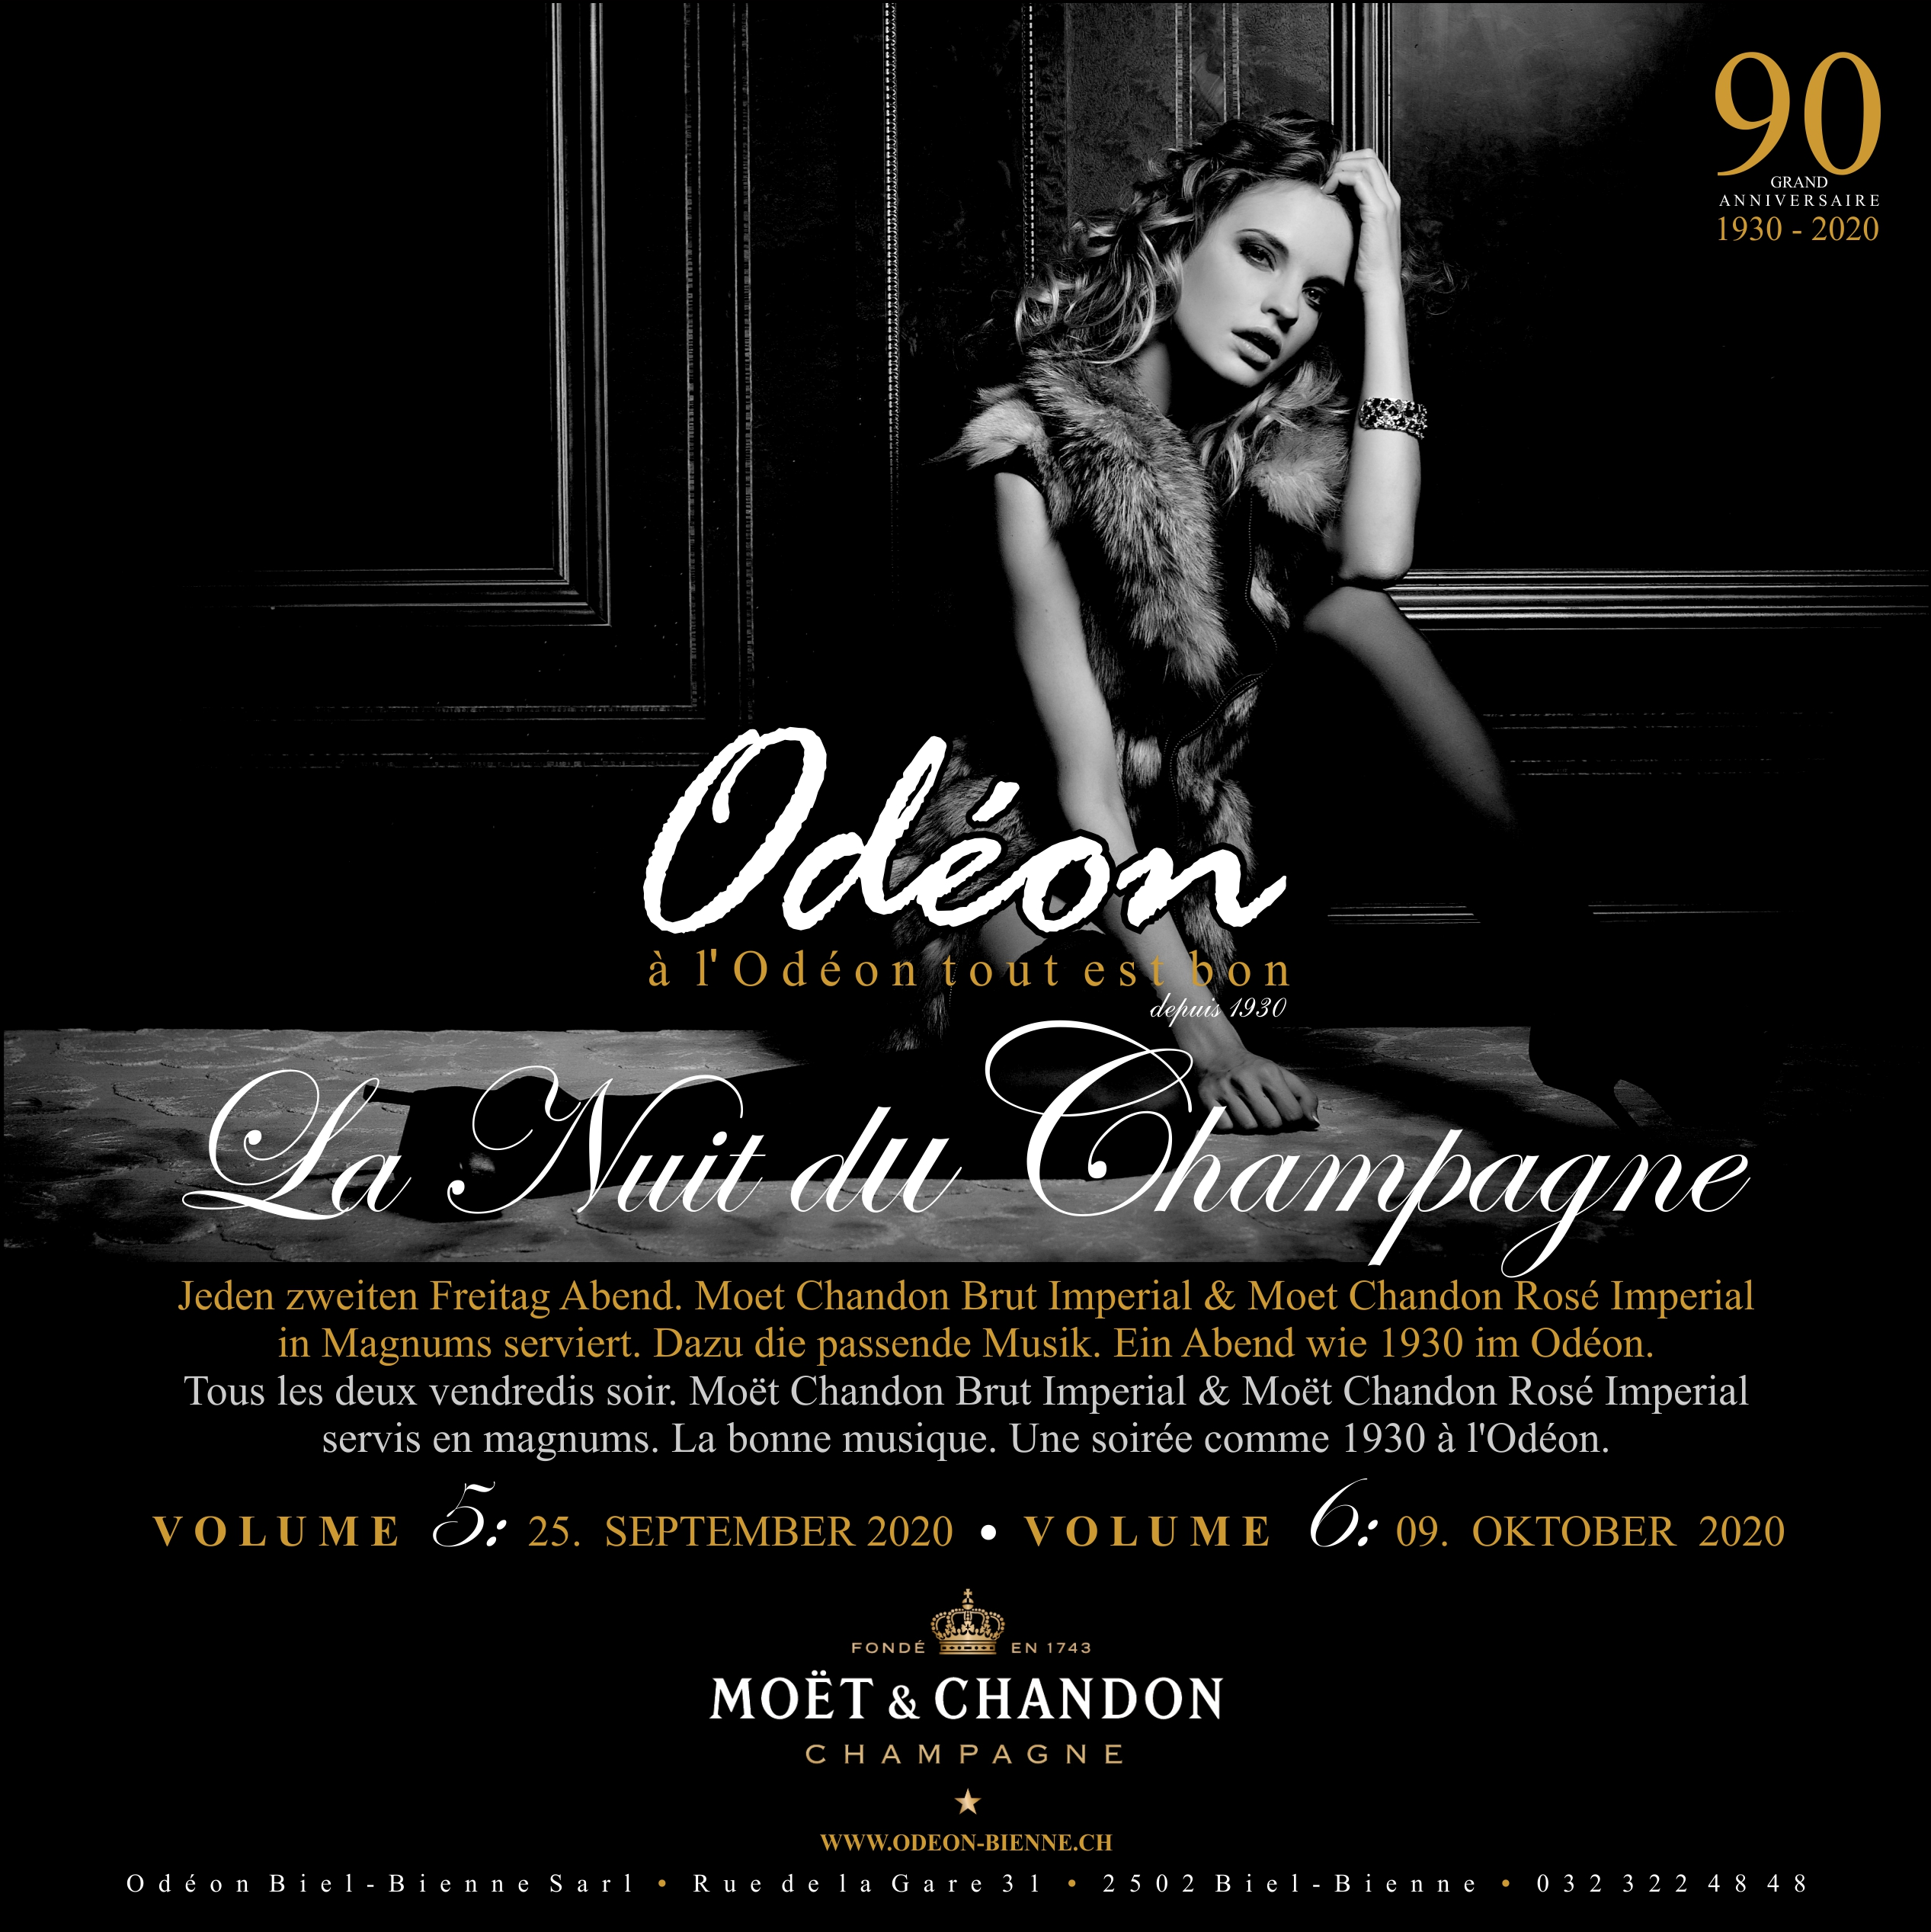 Odeon la Nuit Du Champagne Version 2 Vor